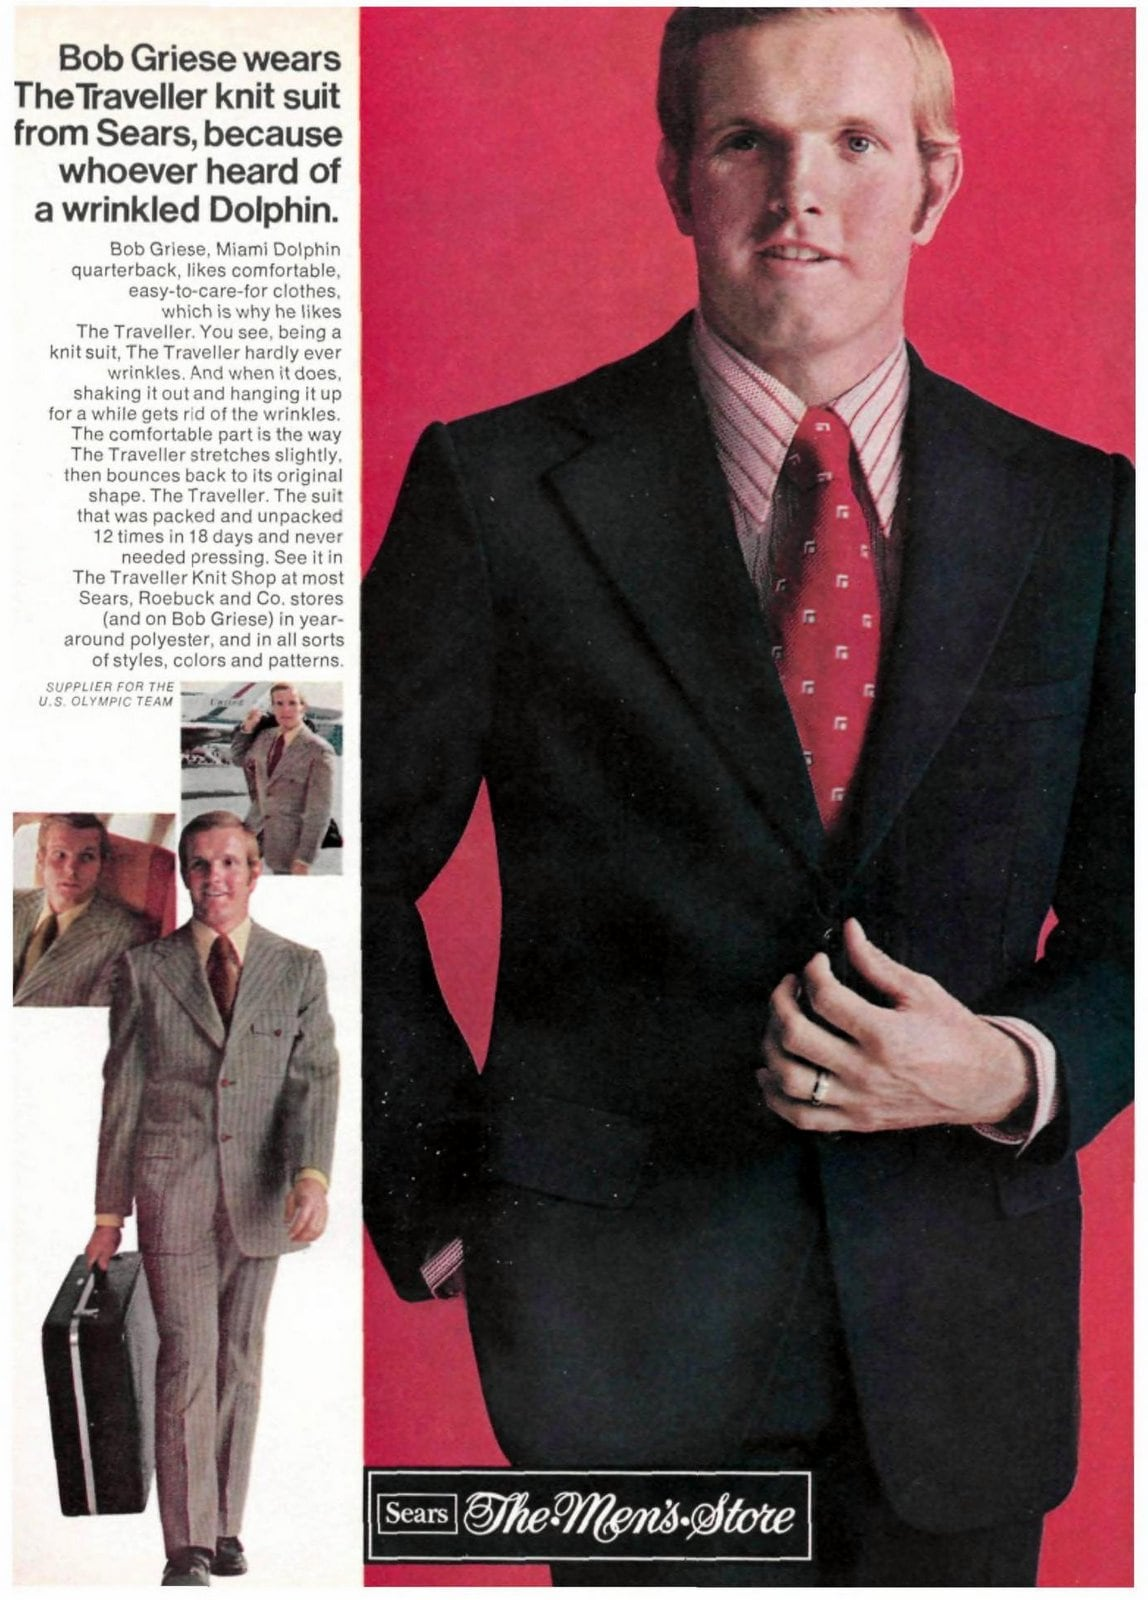 Sears suit on football player Bob Griese (1971)